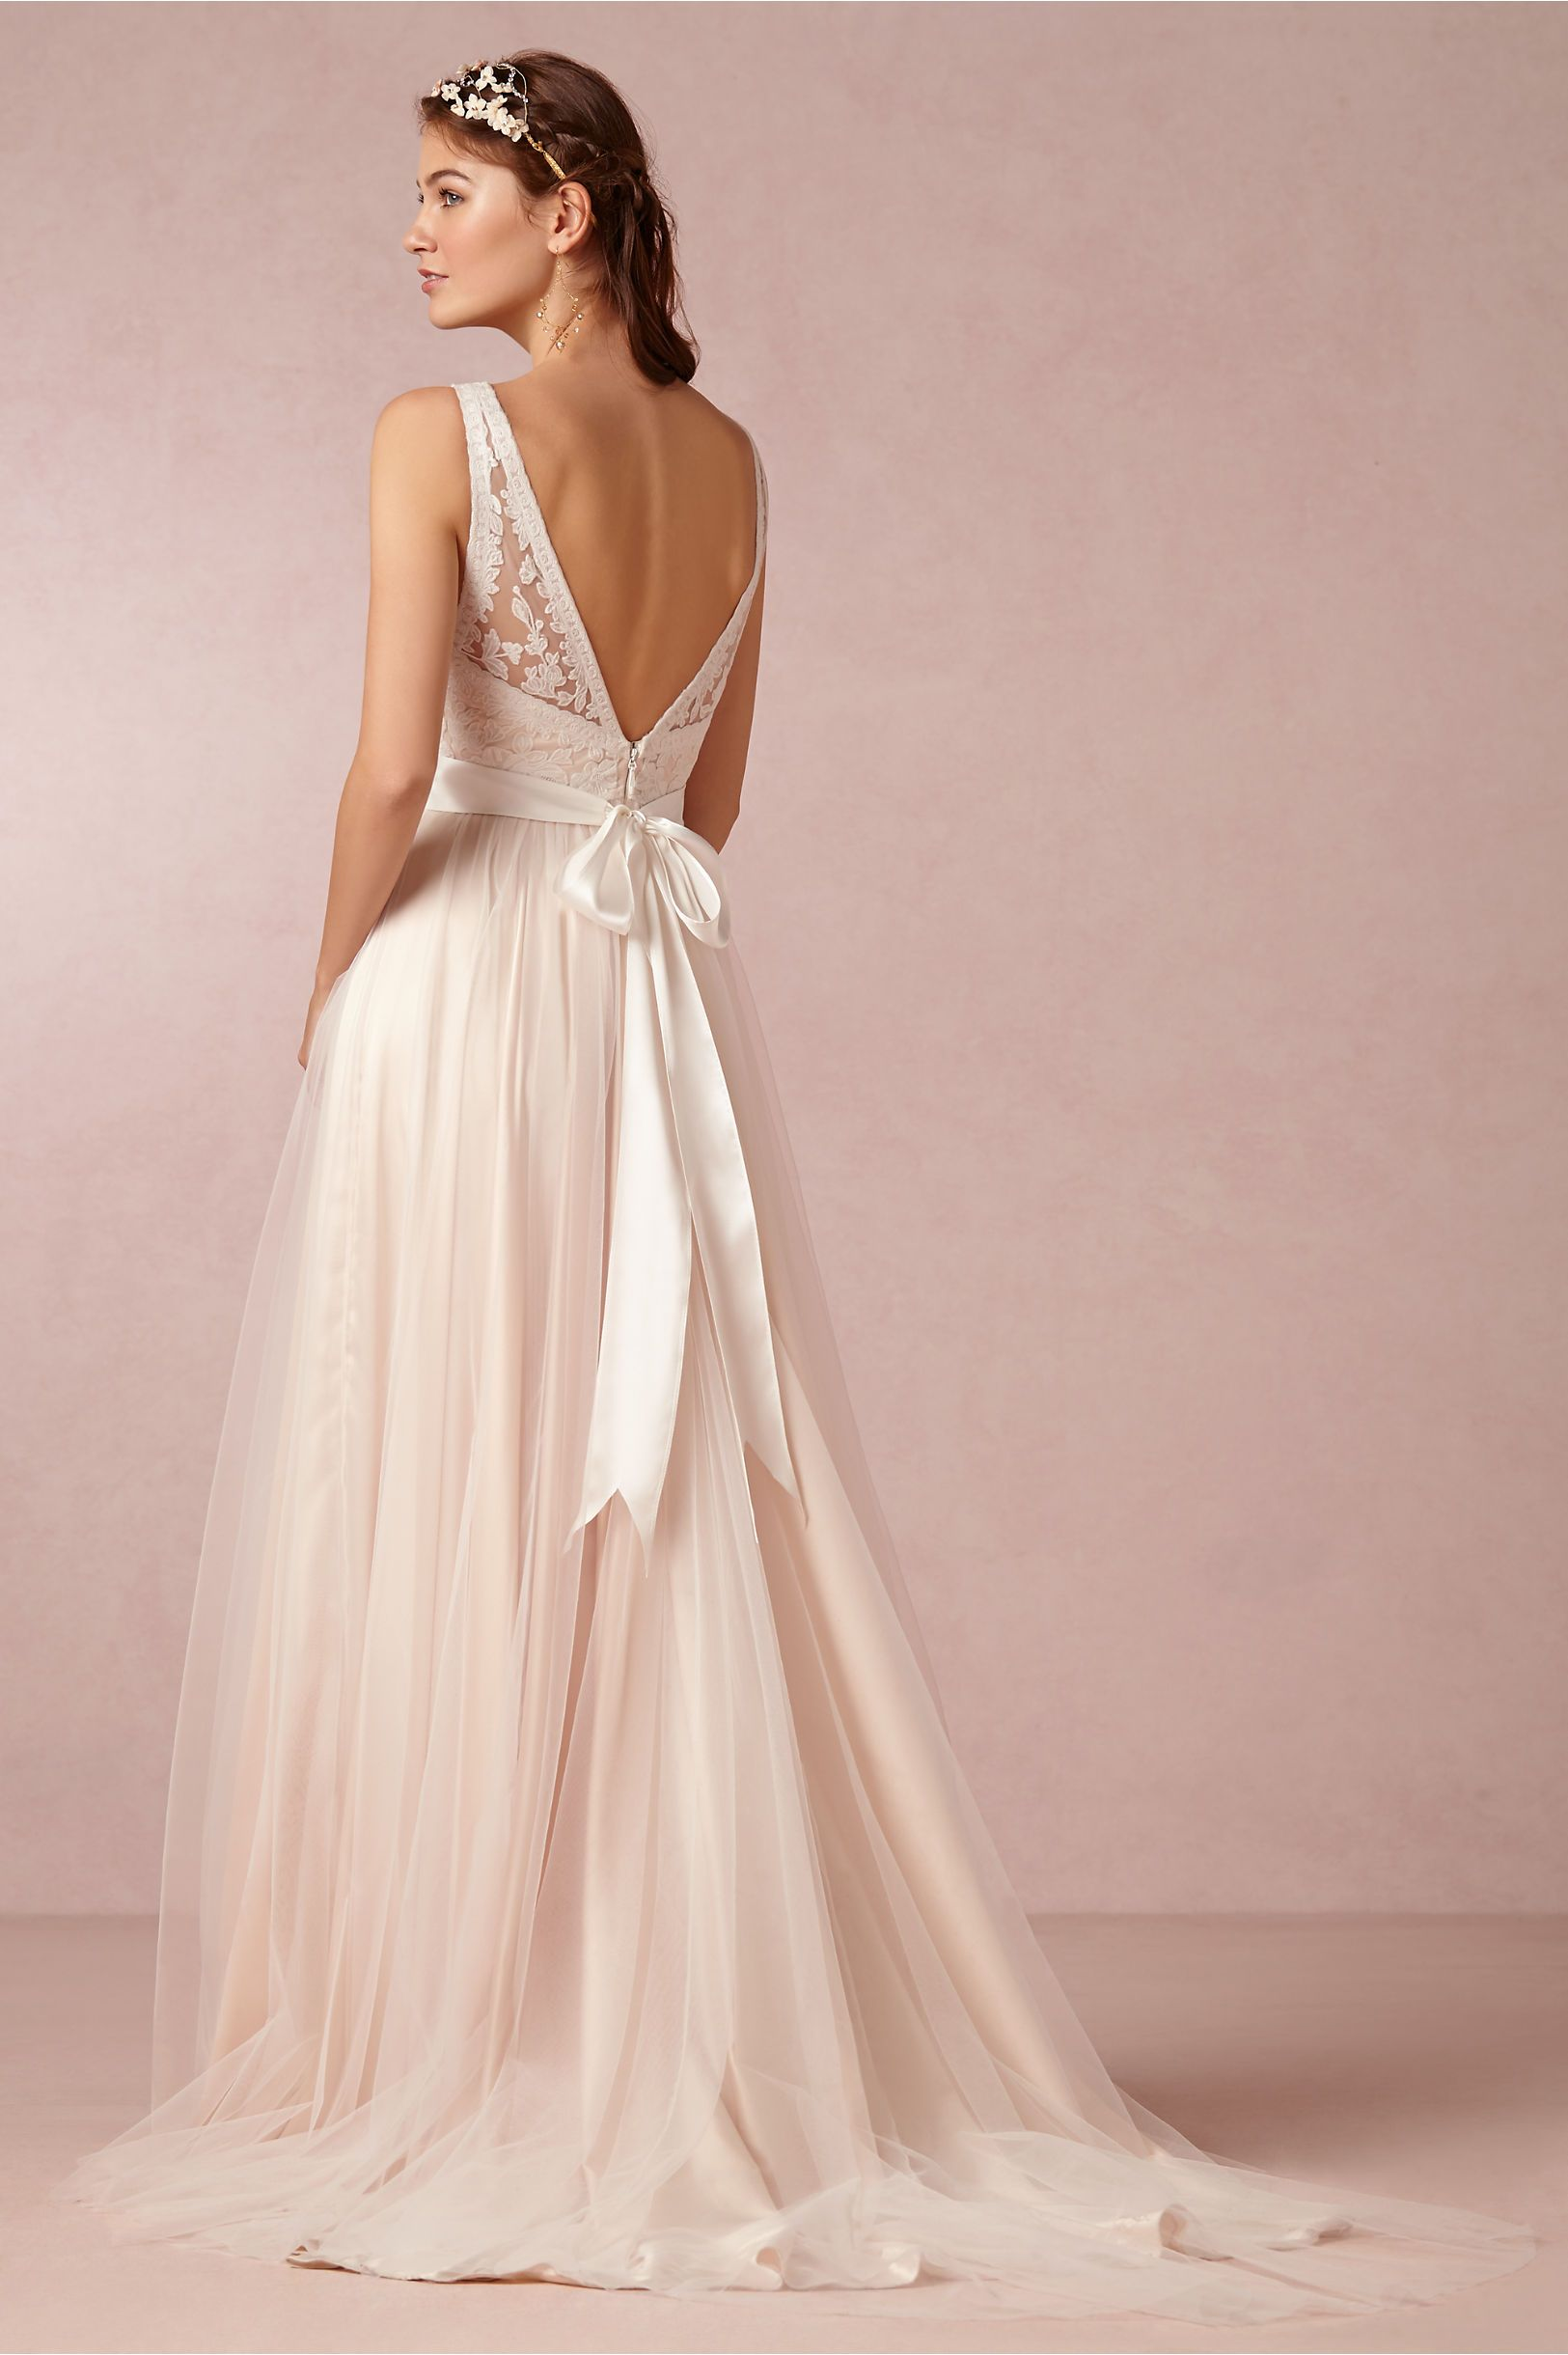 BHLDN Tamsin Gown in Bride Wedding Dresses Ball Gown at BHLDN ...